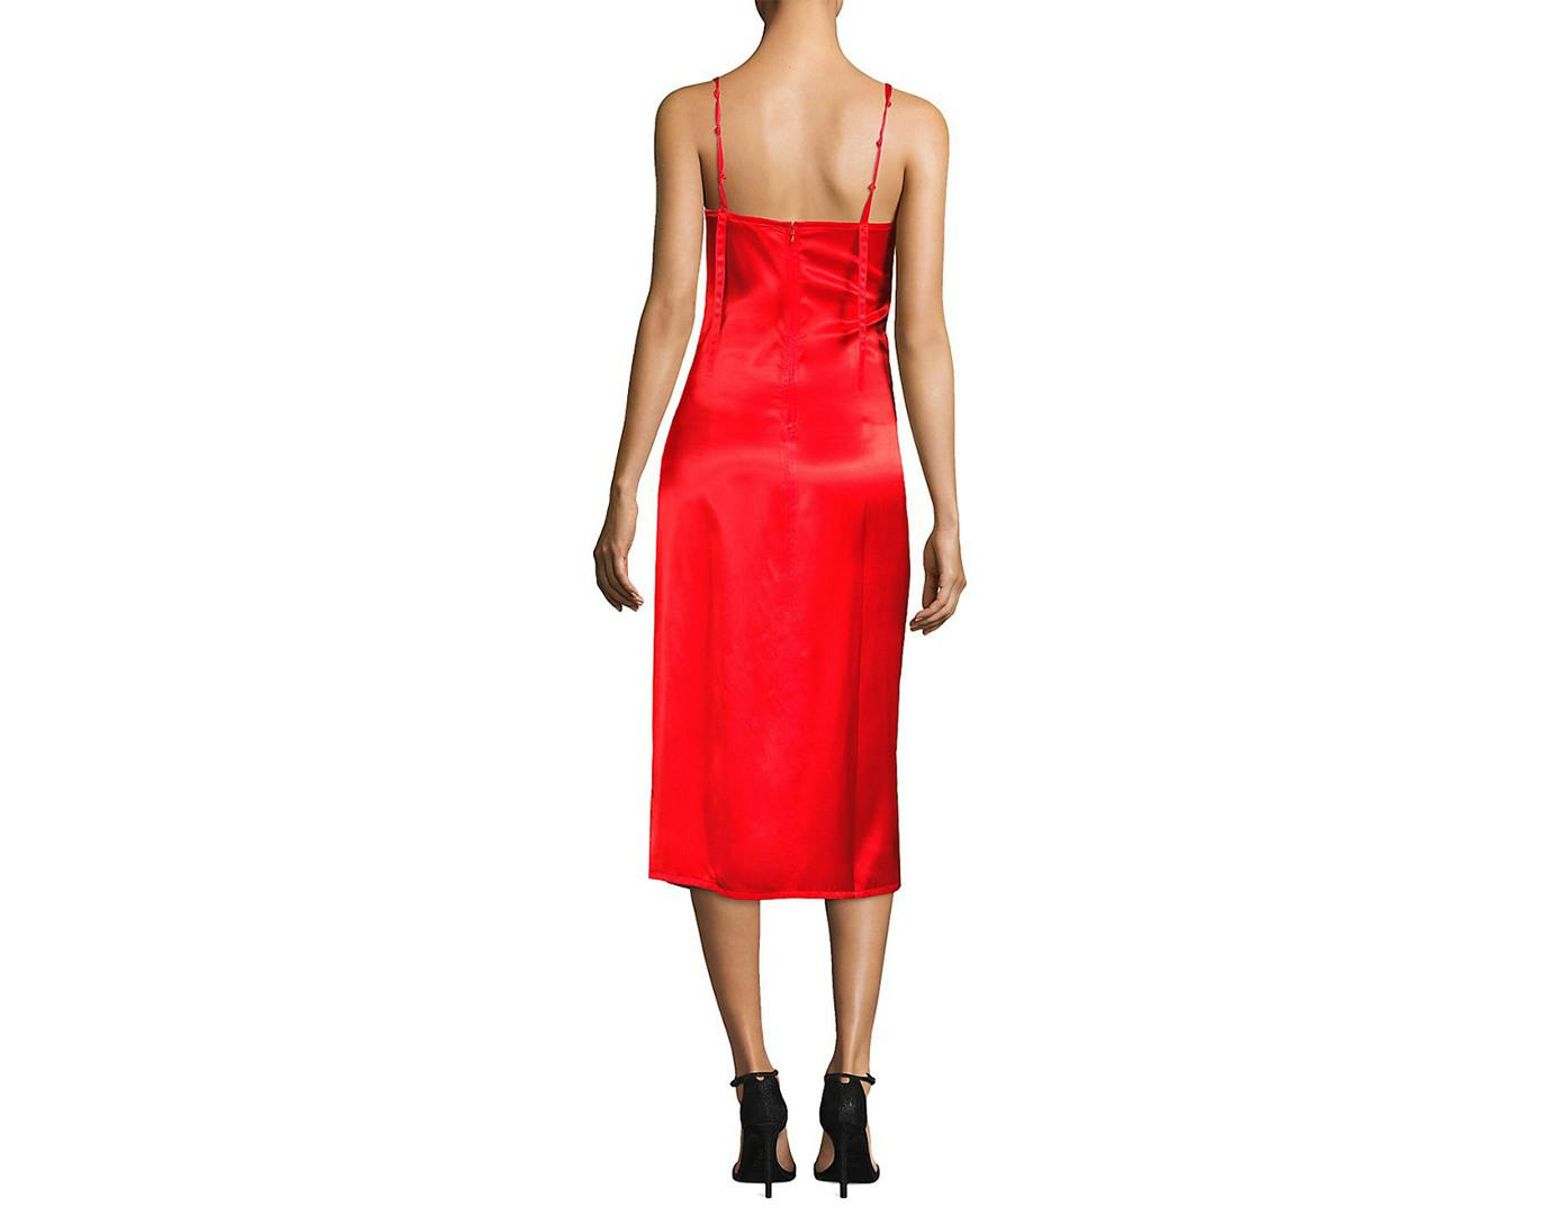 6bedc02ccb0f Helmut Lang Ruched Slip Dress in Red - Save 56% - Lyst